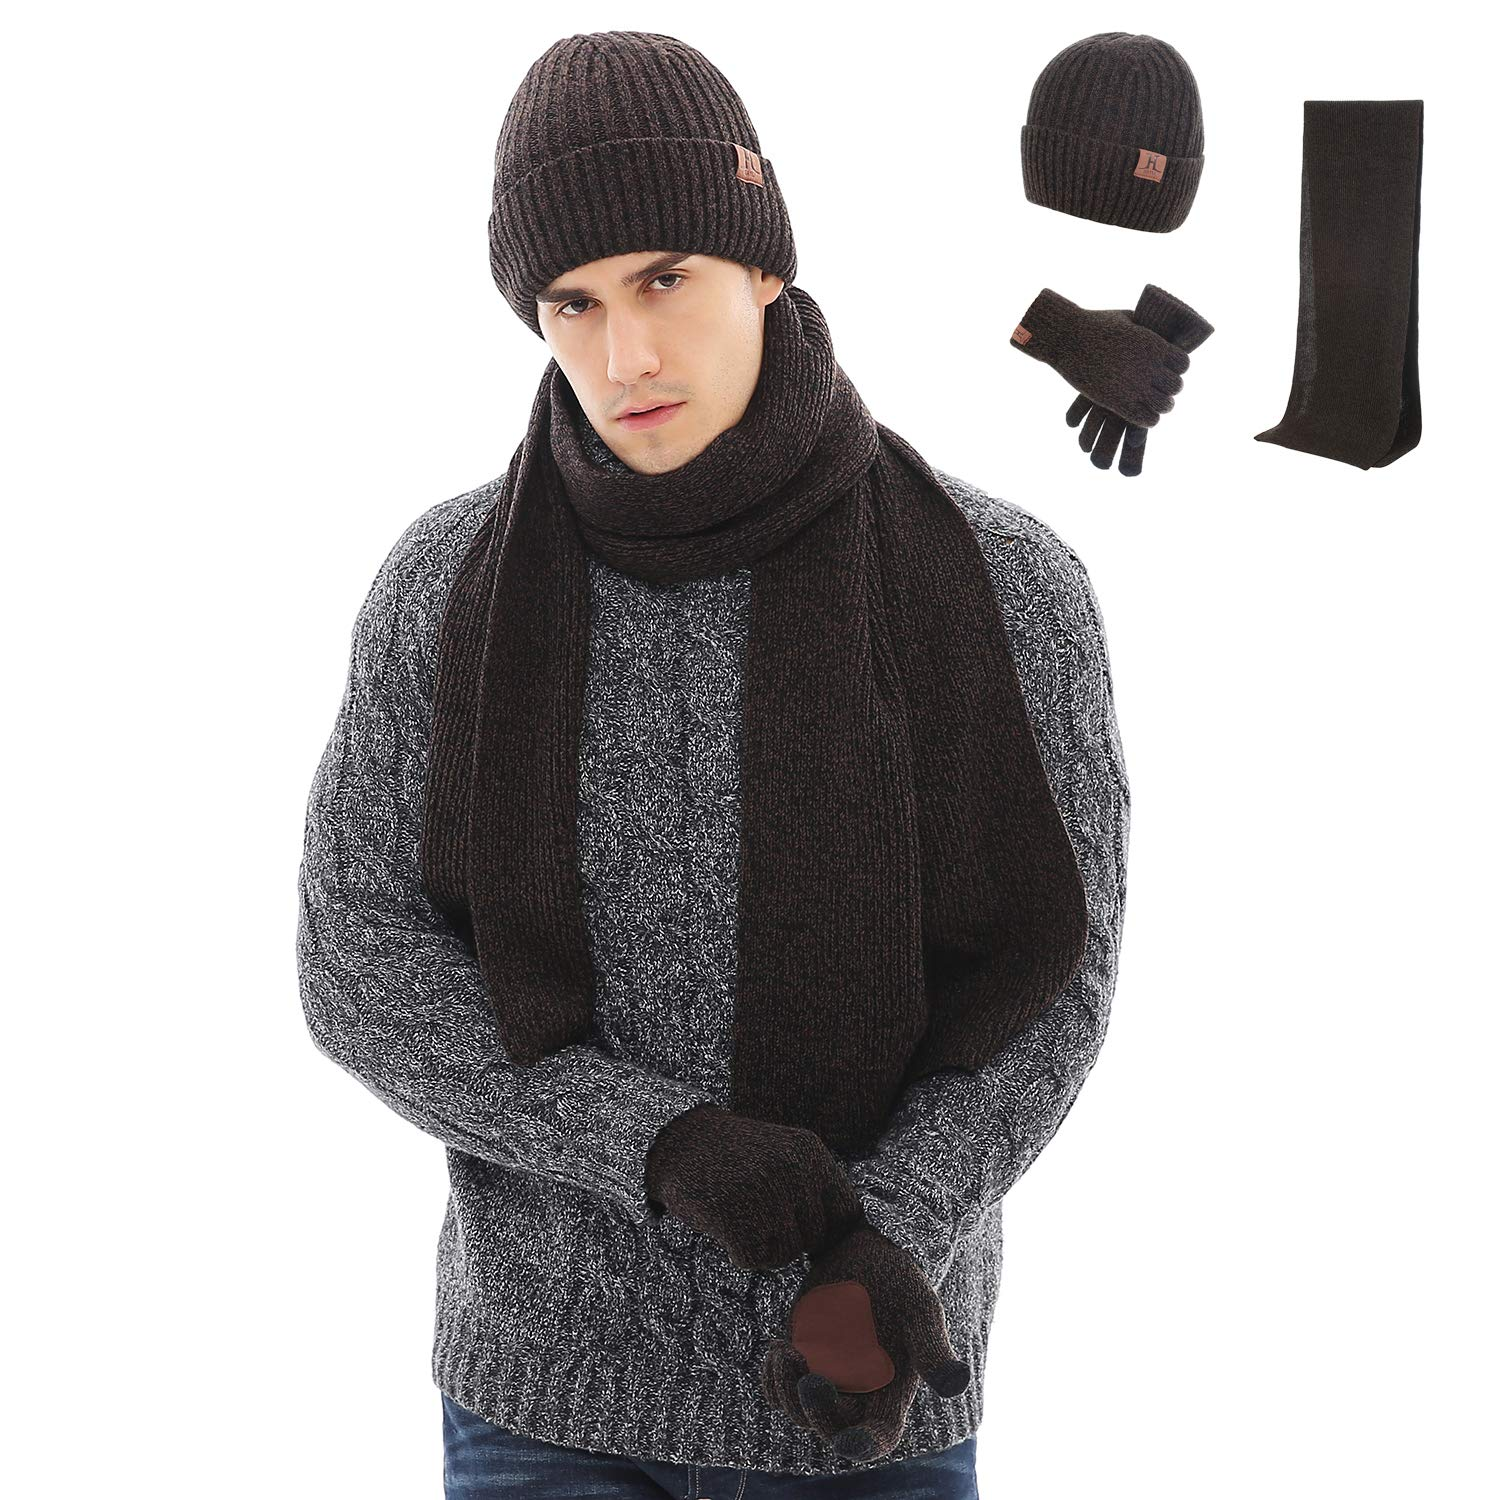 Maylisacc Winter 3Pcs in 1 Warm Thick Knit Beanie Hat Long Scarf and Touchscreen Driving Gloves Set for Men